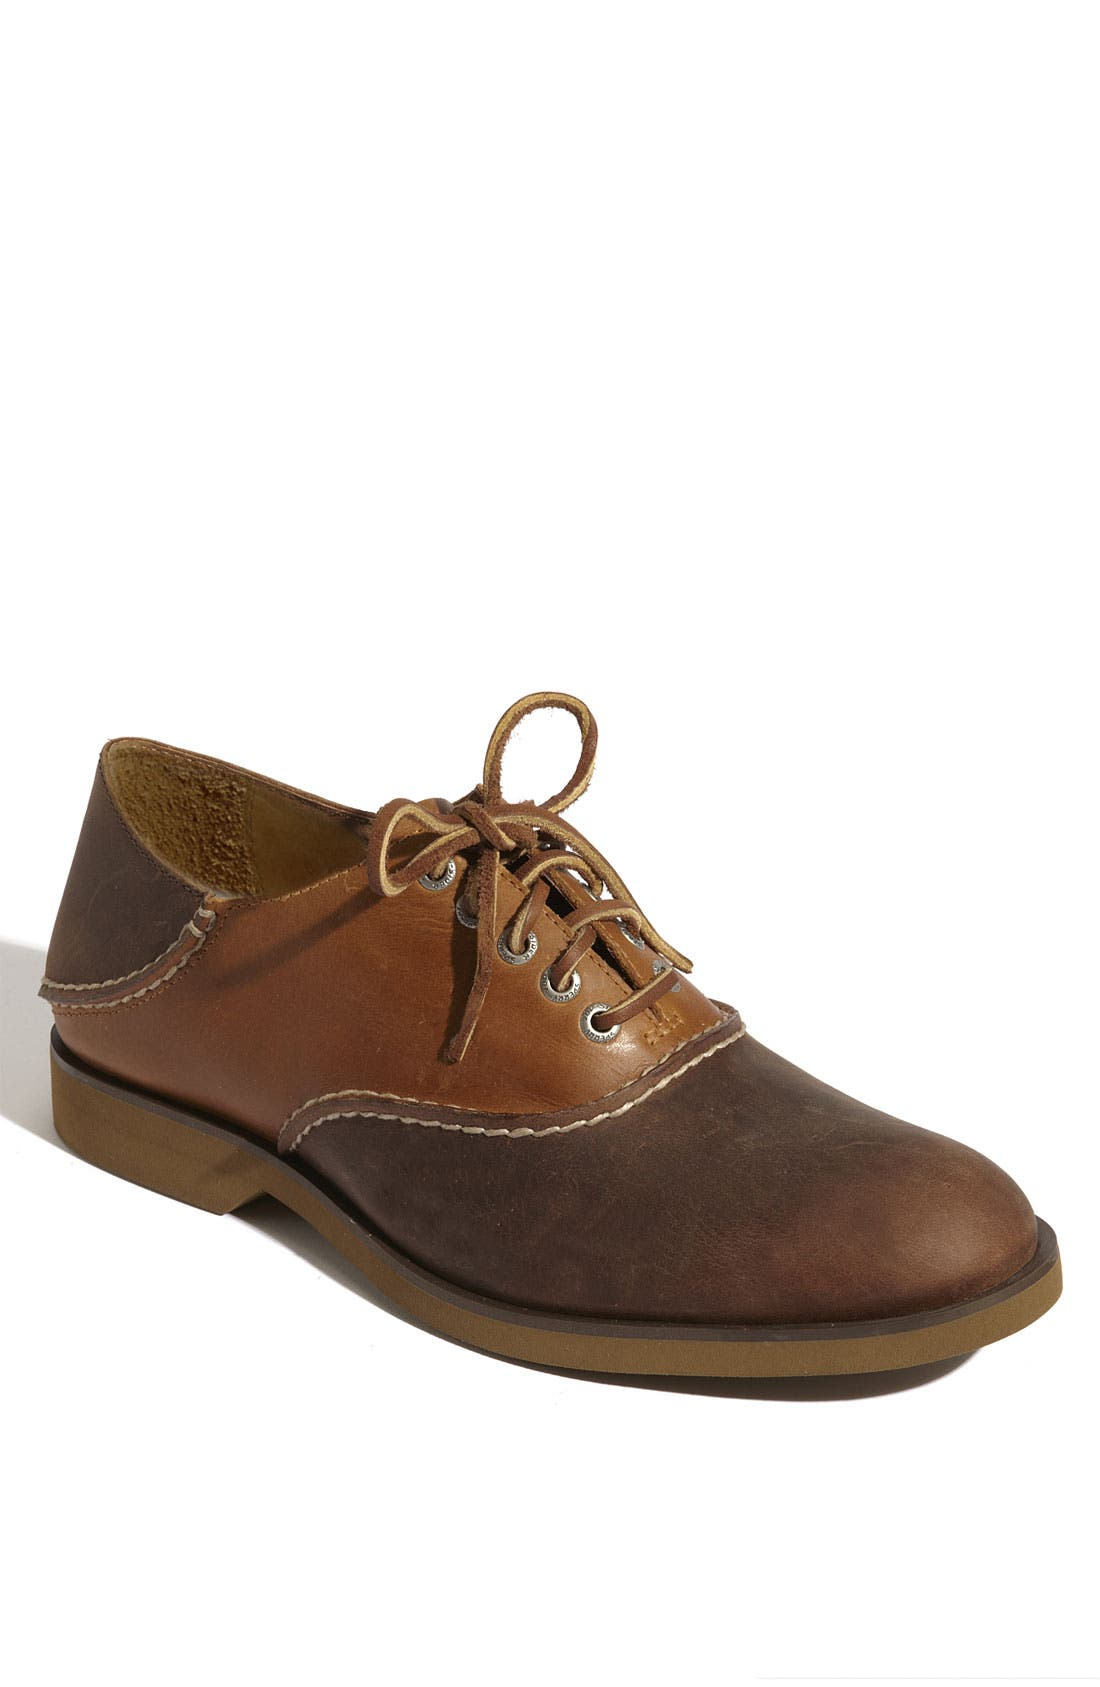 Main Image - Sperry Top-Sider® 'Boat' Oxford Saddle Shoe